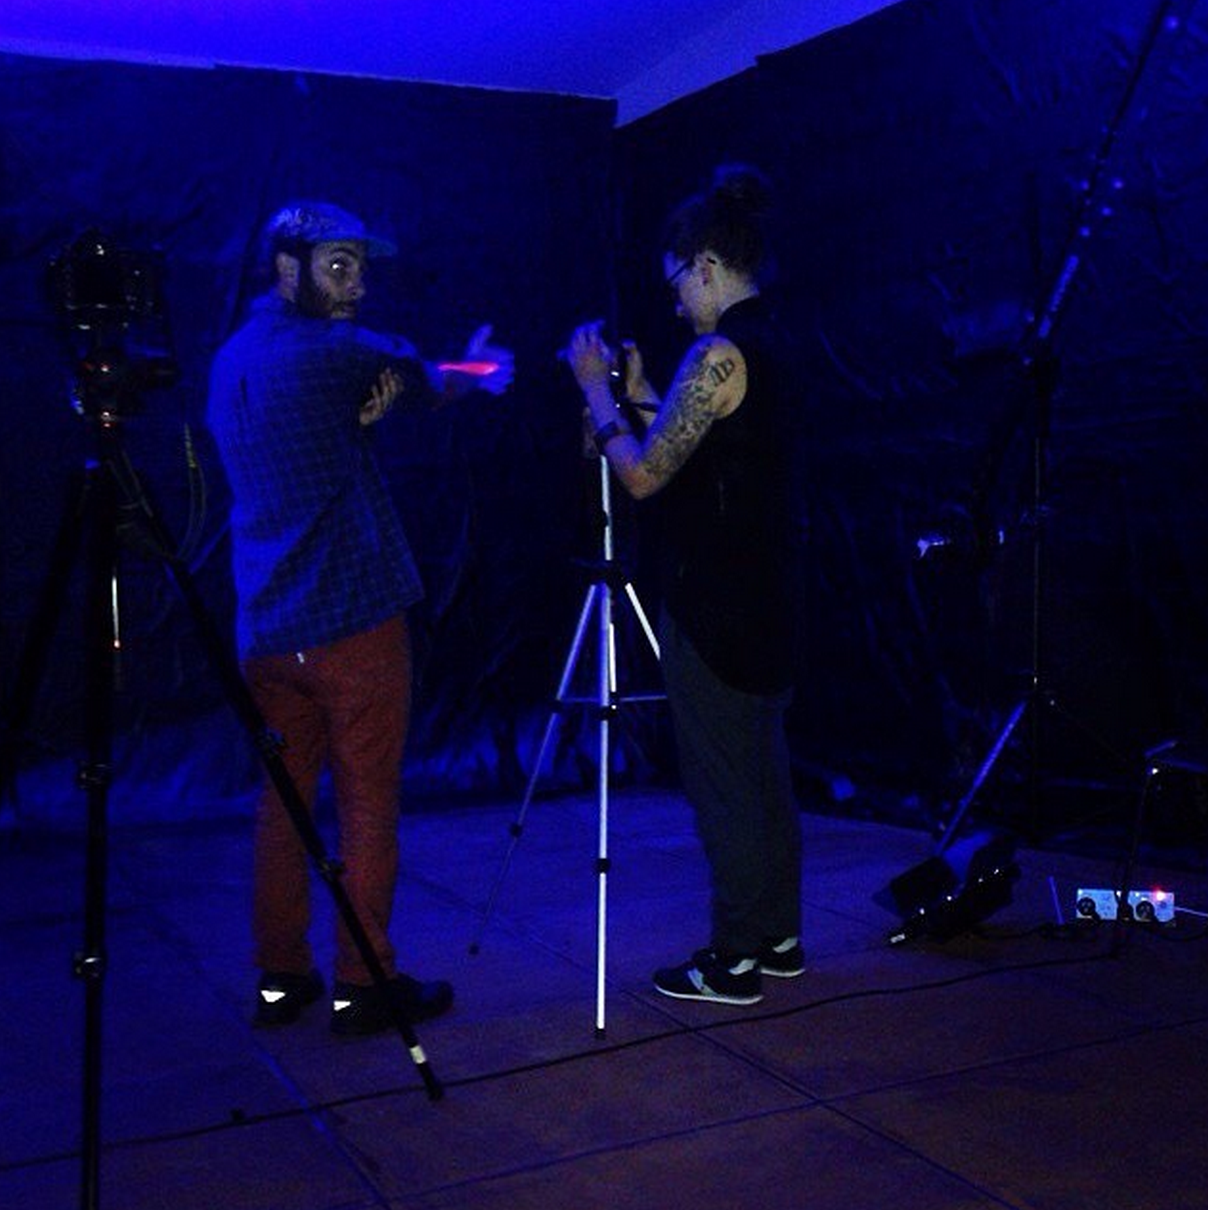 Mark + Sophi testing out the blacklight paint on camera before bringing in Hannah. Photo by Tama Owens.